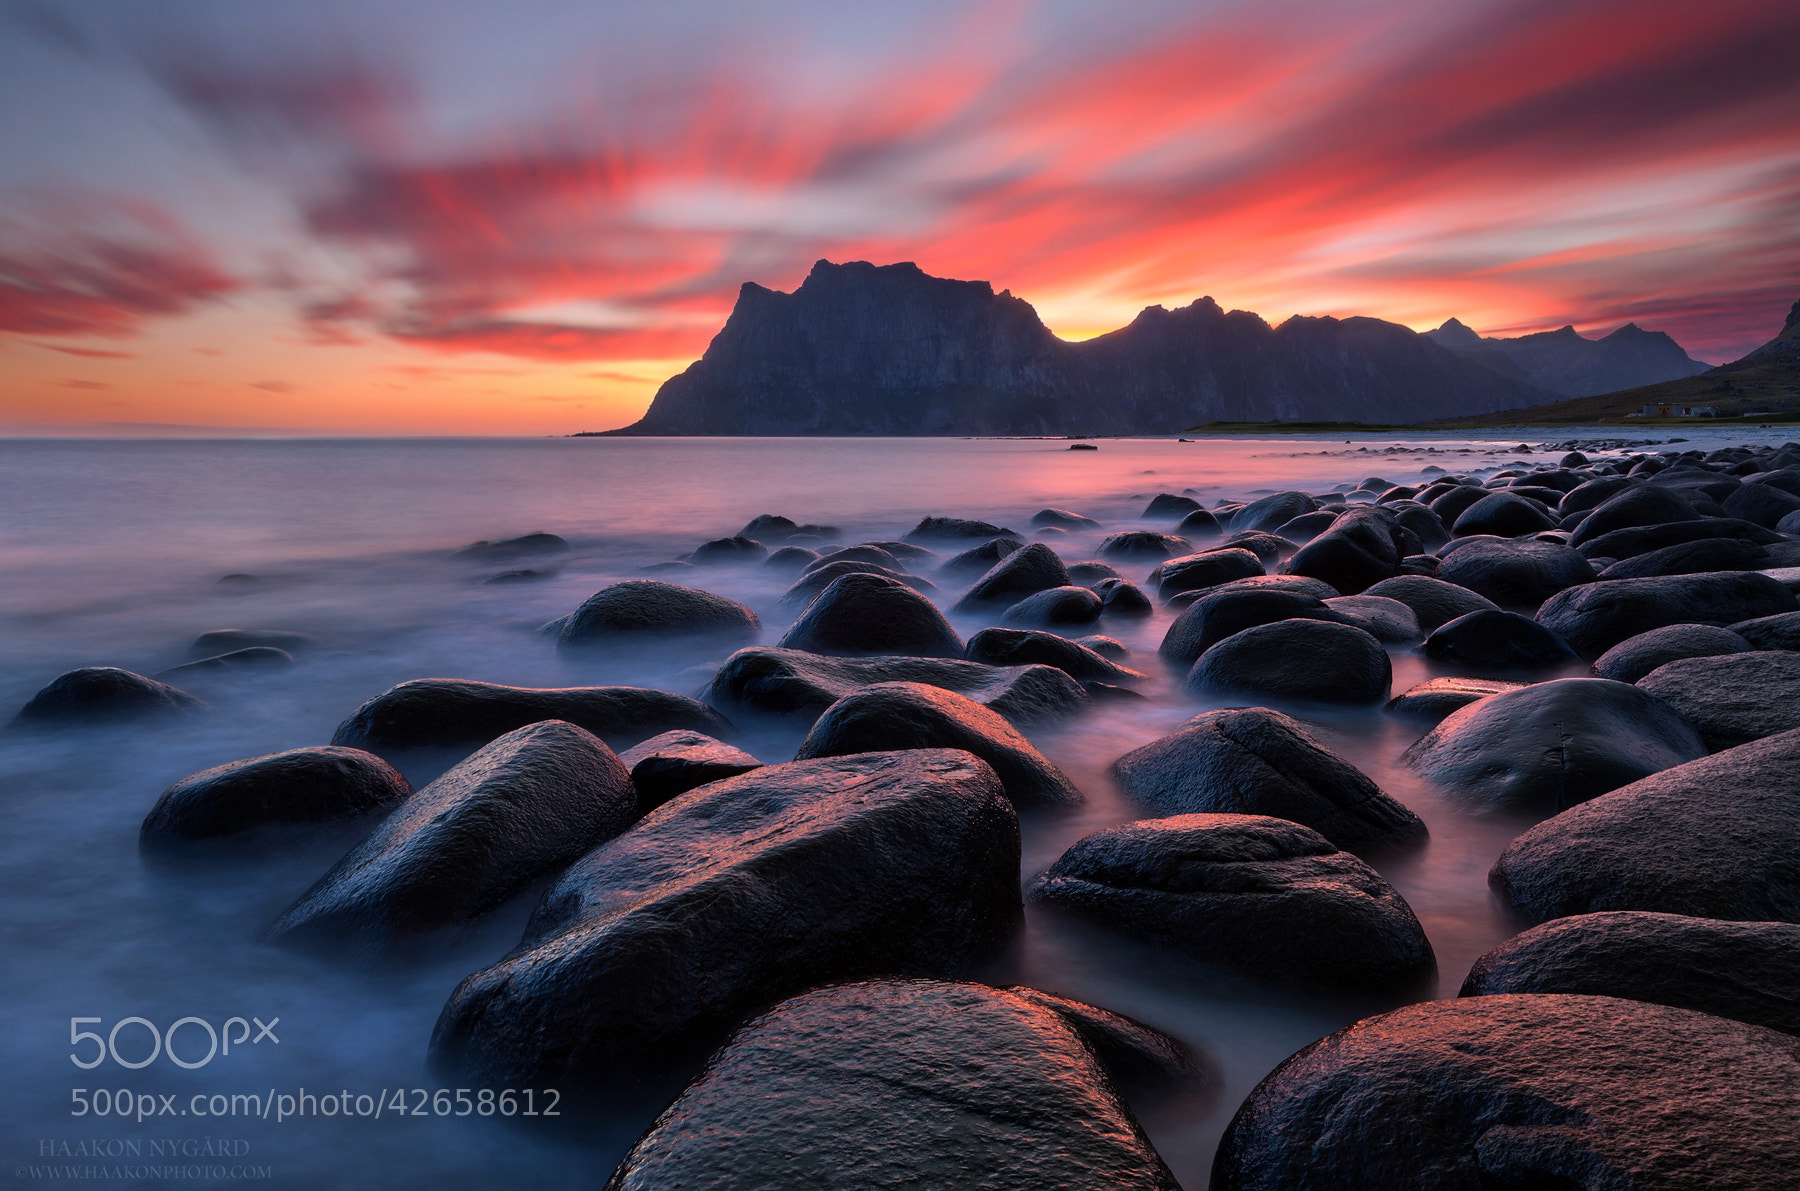 Photograph Rock 'n' Roll by Haakon Nygård on 500px